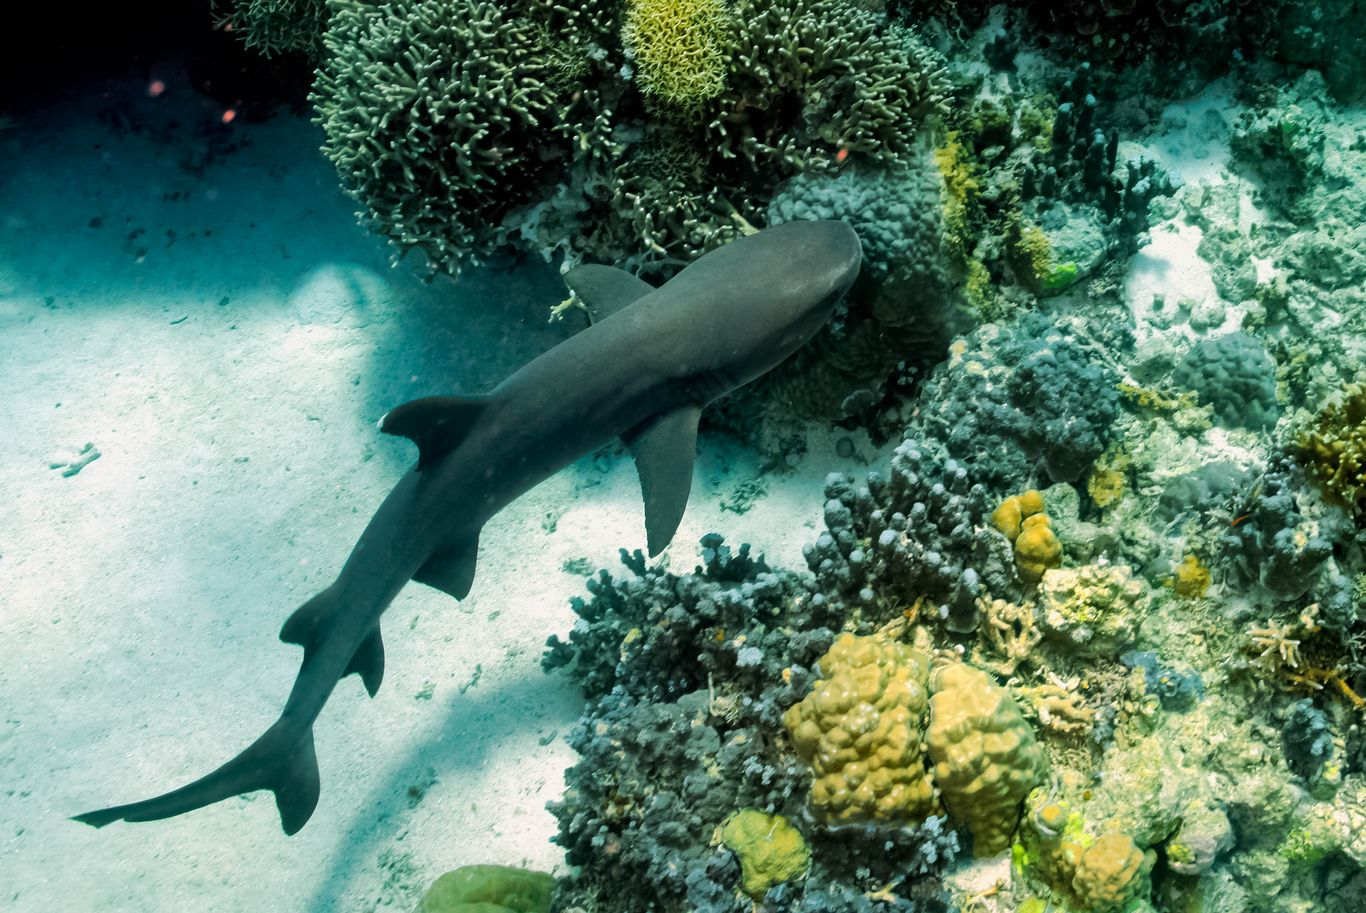 A whitetip reef shark swimming over corals